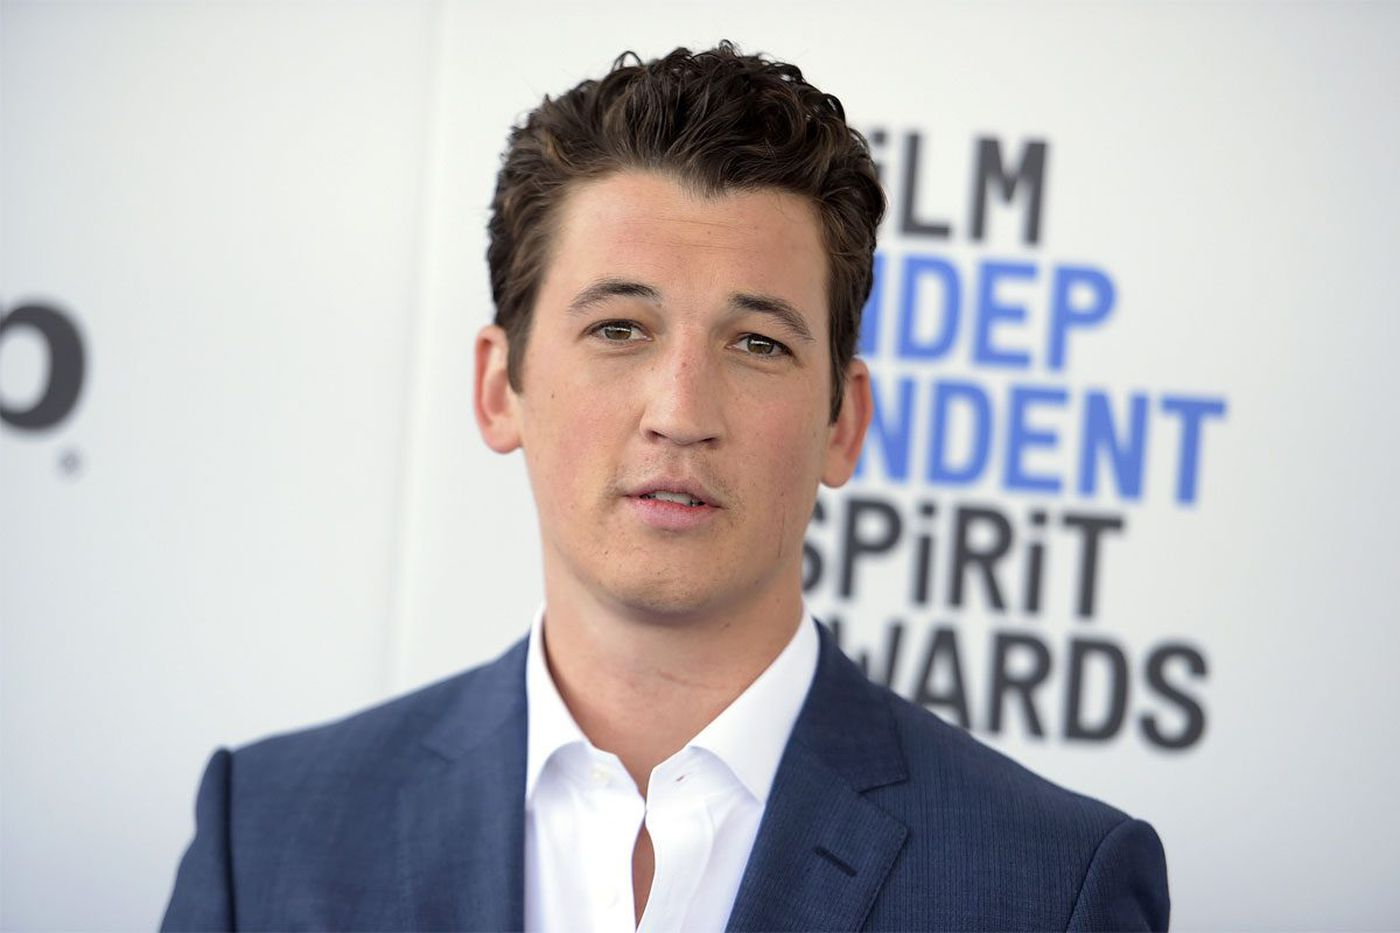 Actor, Downingtown native Miles Teller arrested for public intoxication in California